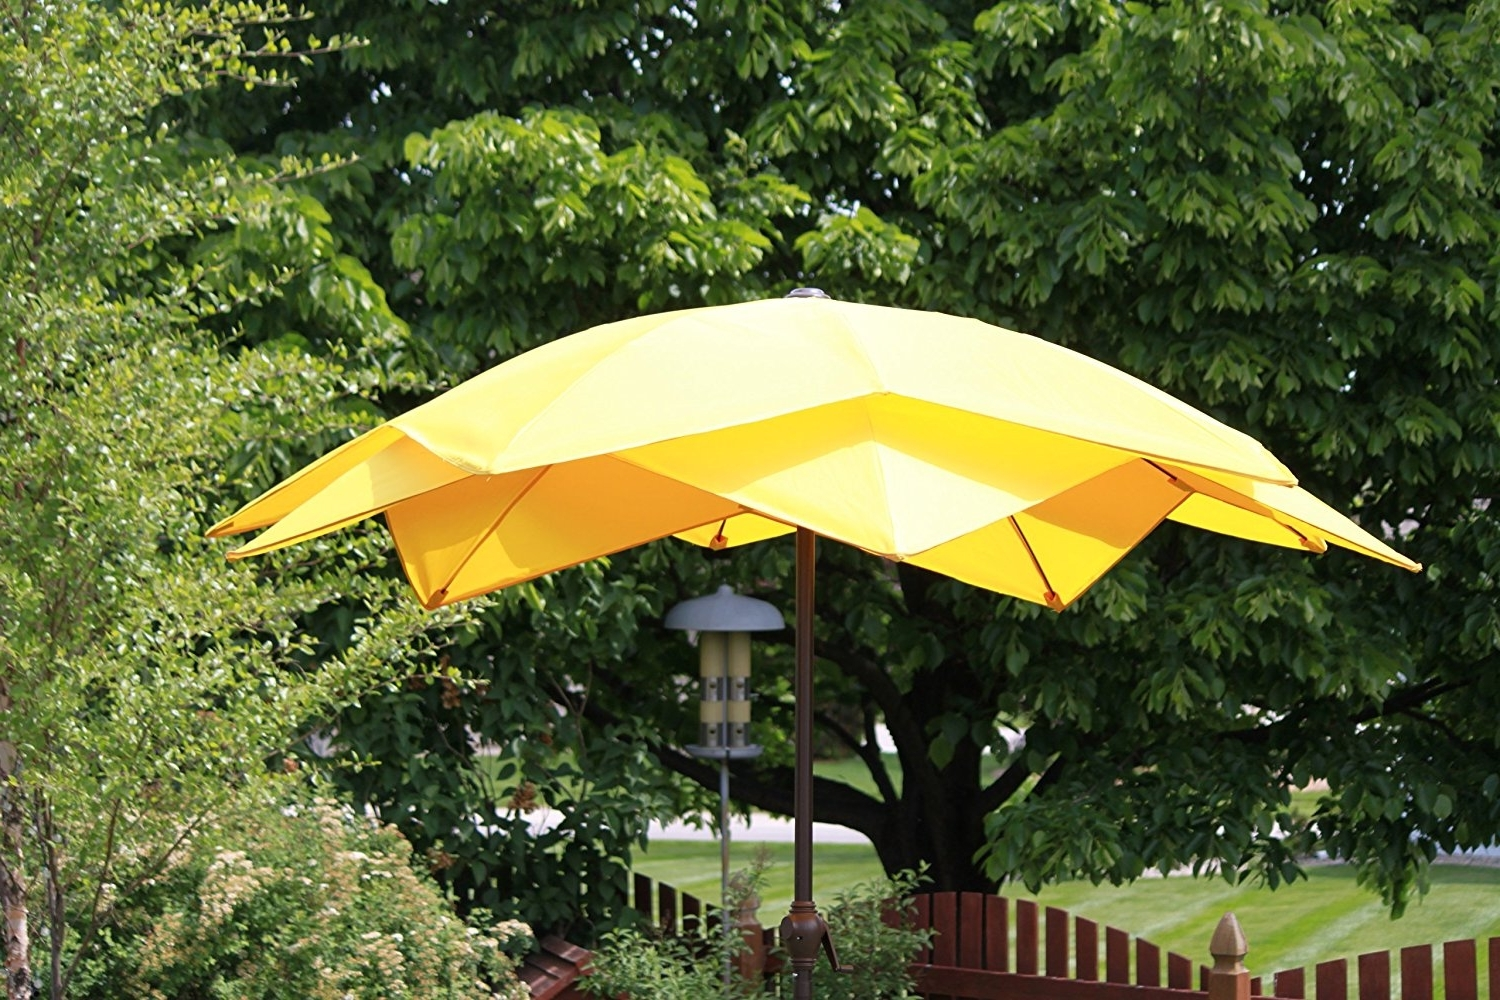 Elegant Wind Resistant Patio Umbrella Uk F36x On Most Luxury Small In Most Up To Date Wind Resistant Patio Umbrellas (View 16 of 20)